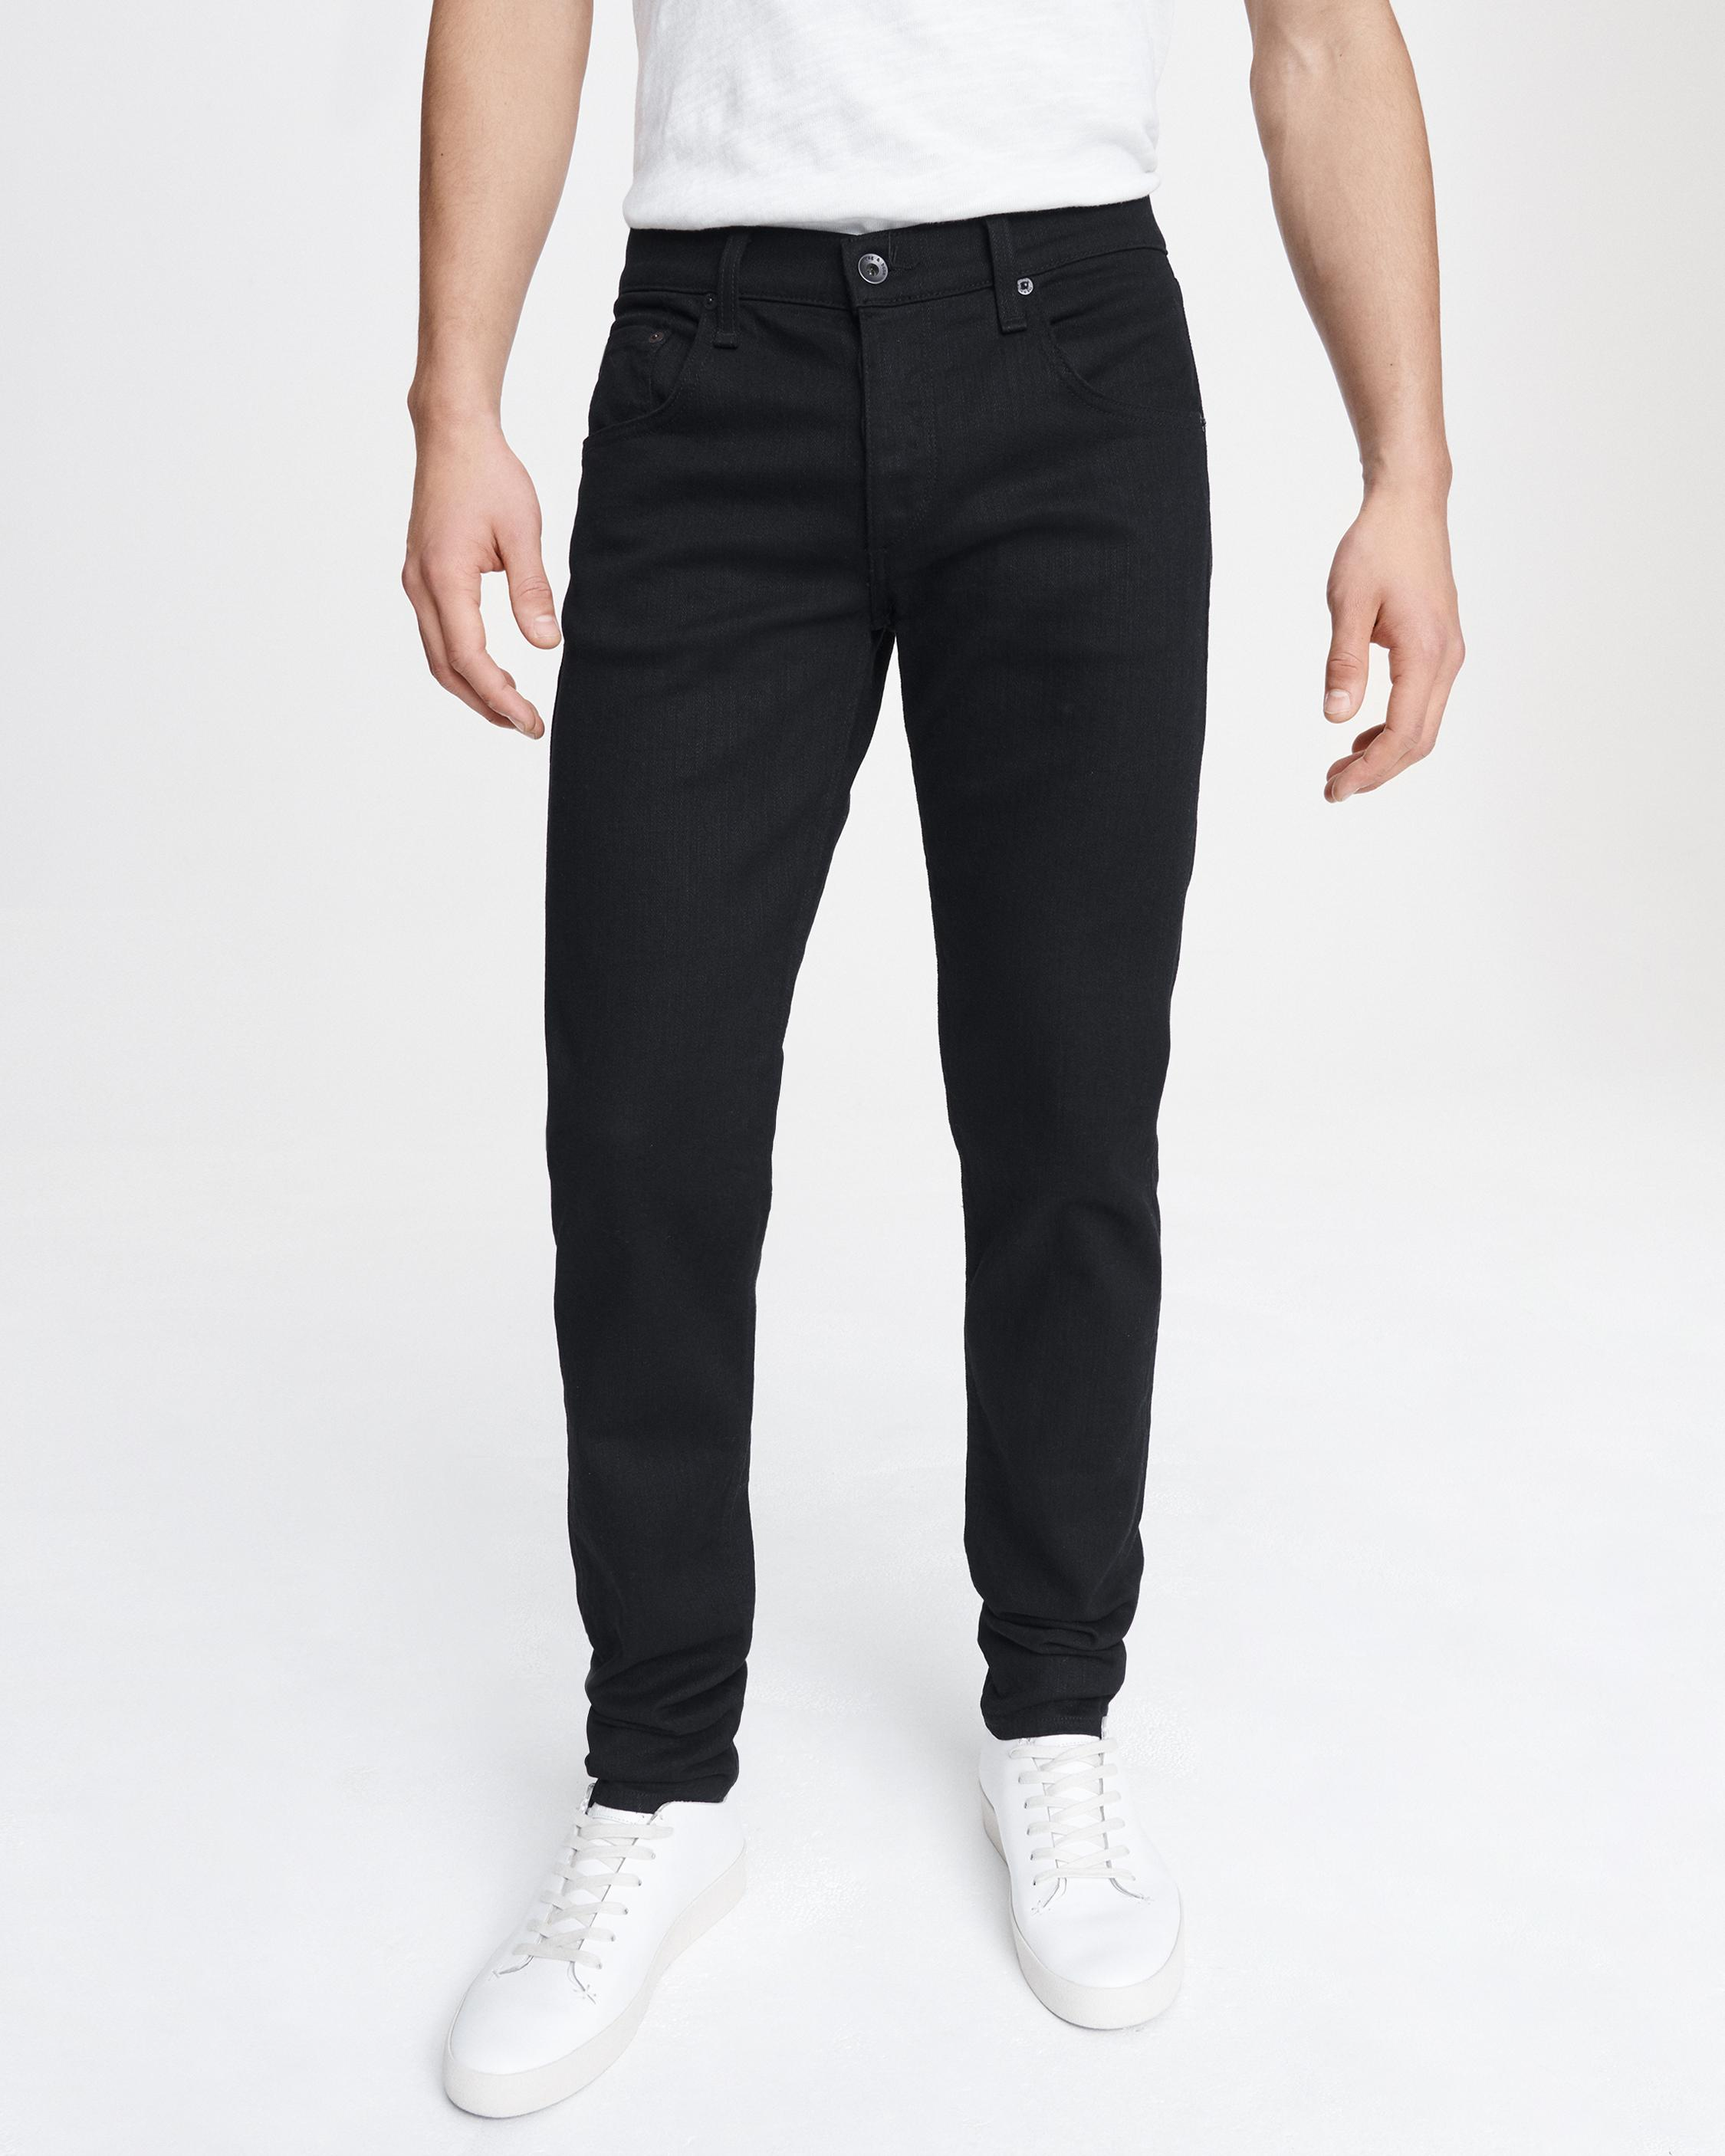 "FIT 1 IN BLACK - 30"" INSEAM AVAILABLE"